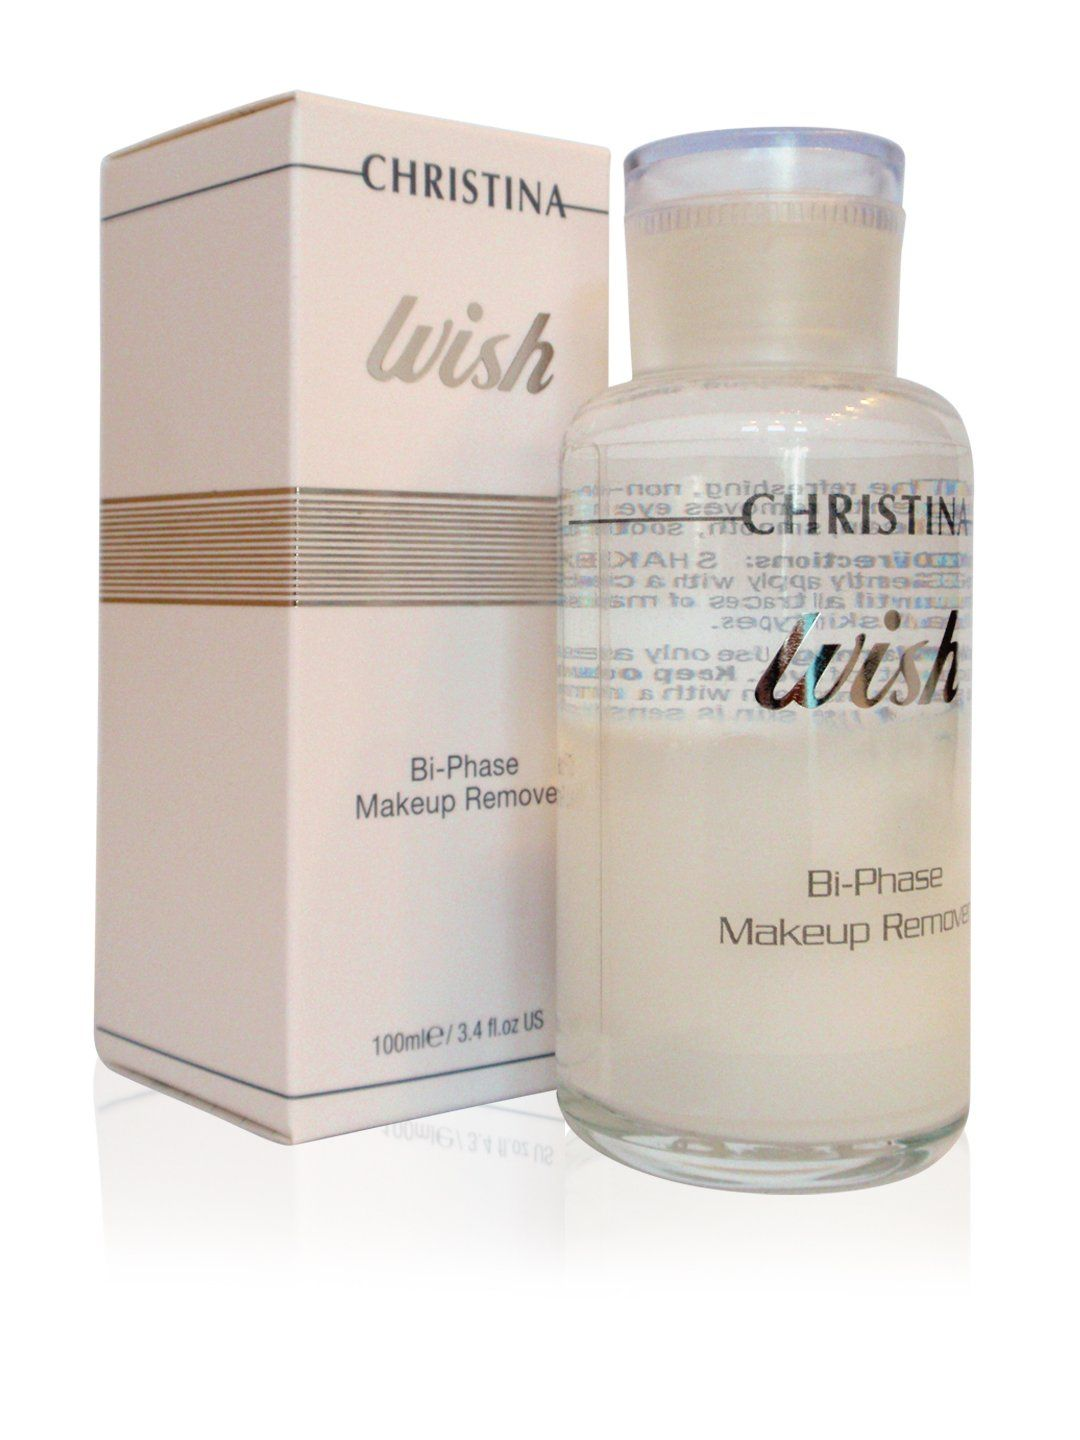 Christina Wish BiPhase Makeup Remover 100ml >>> Be sure to